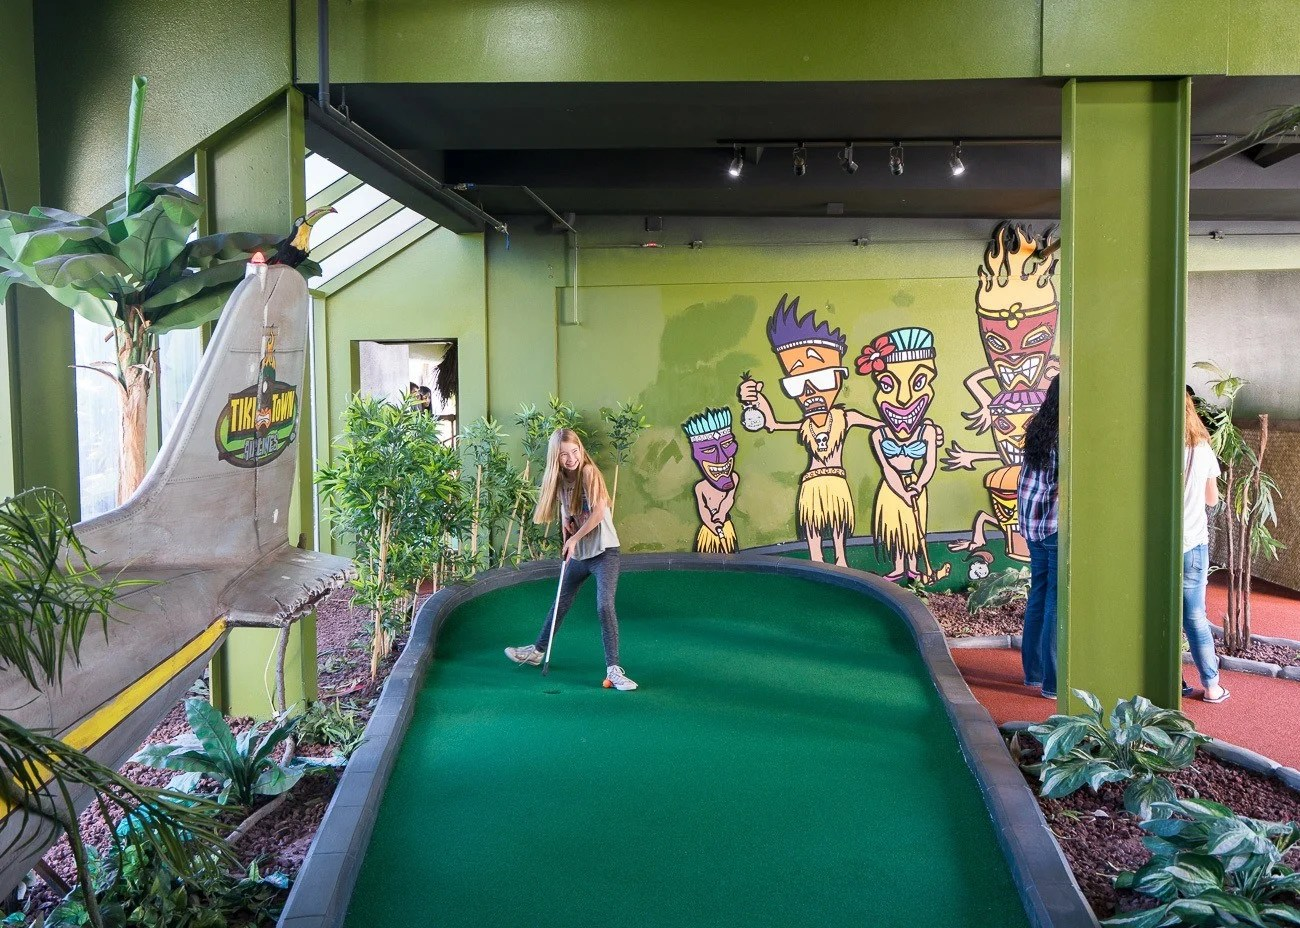 hight resolution of miniature golf at belmont park in san diego